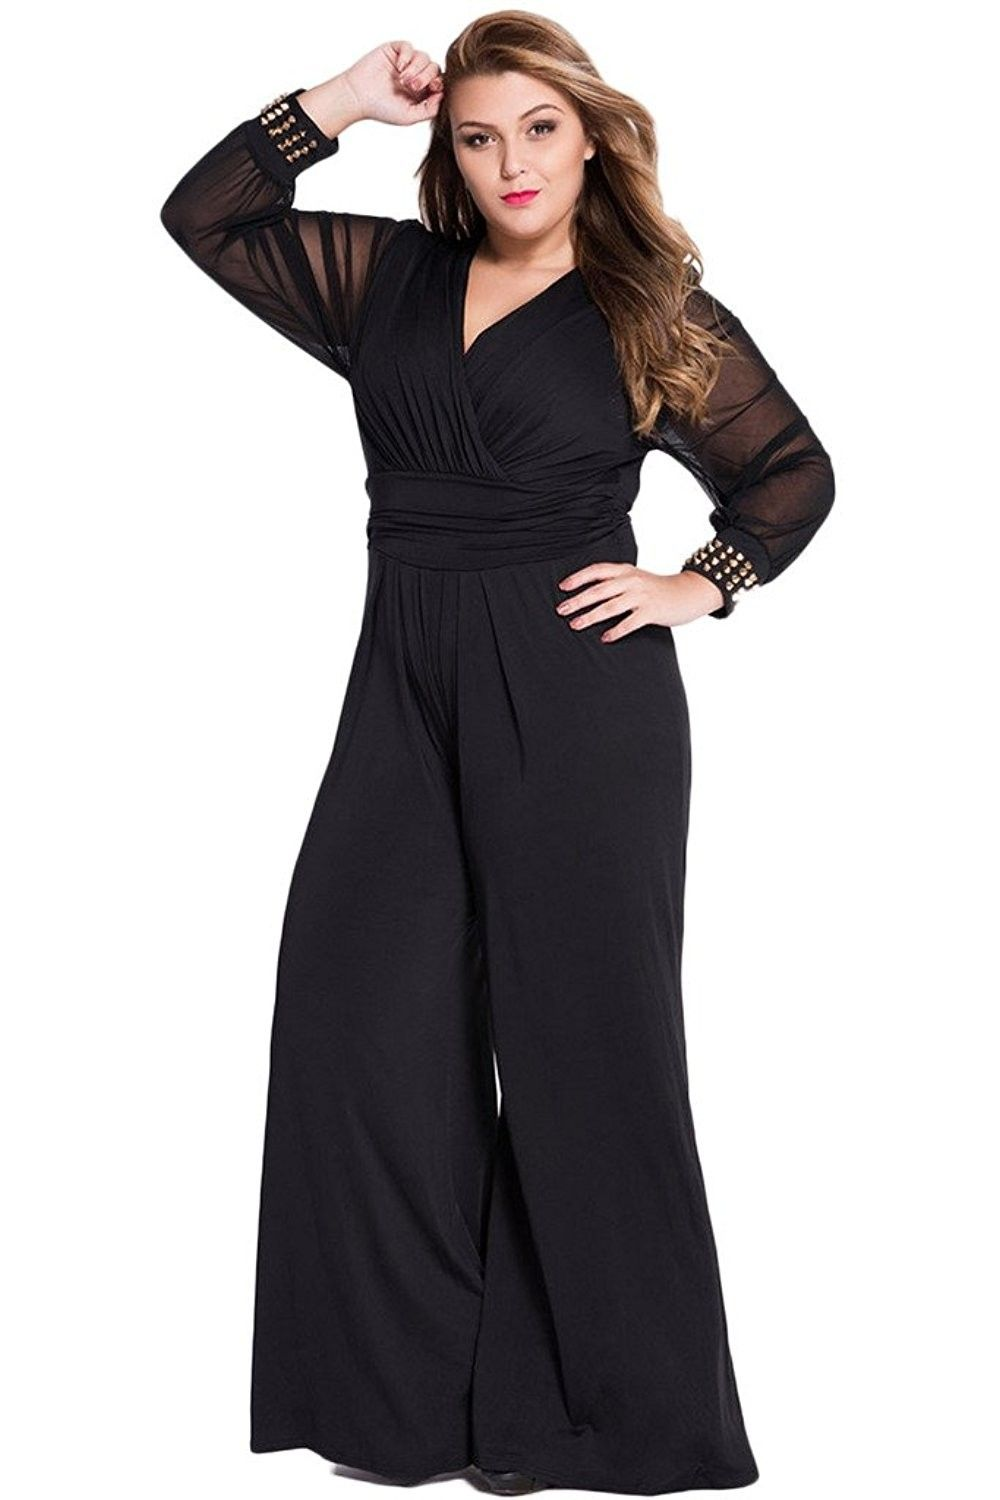 a02c7666594 Womens Plus Size Jumpsuits Long Sleeve V-neck Casual Style Set Black ...